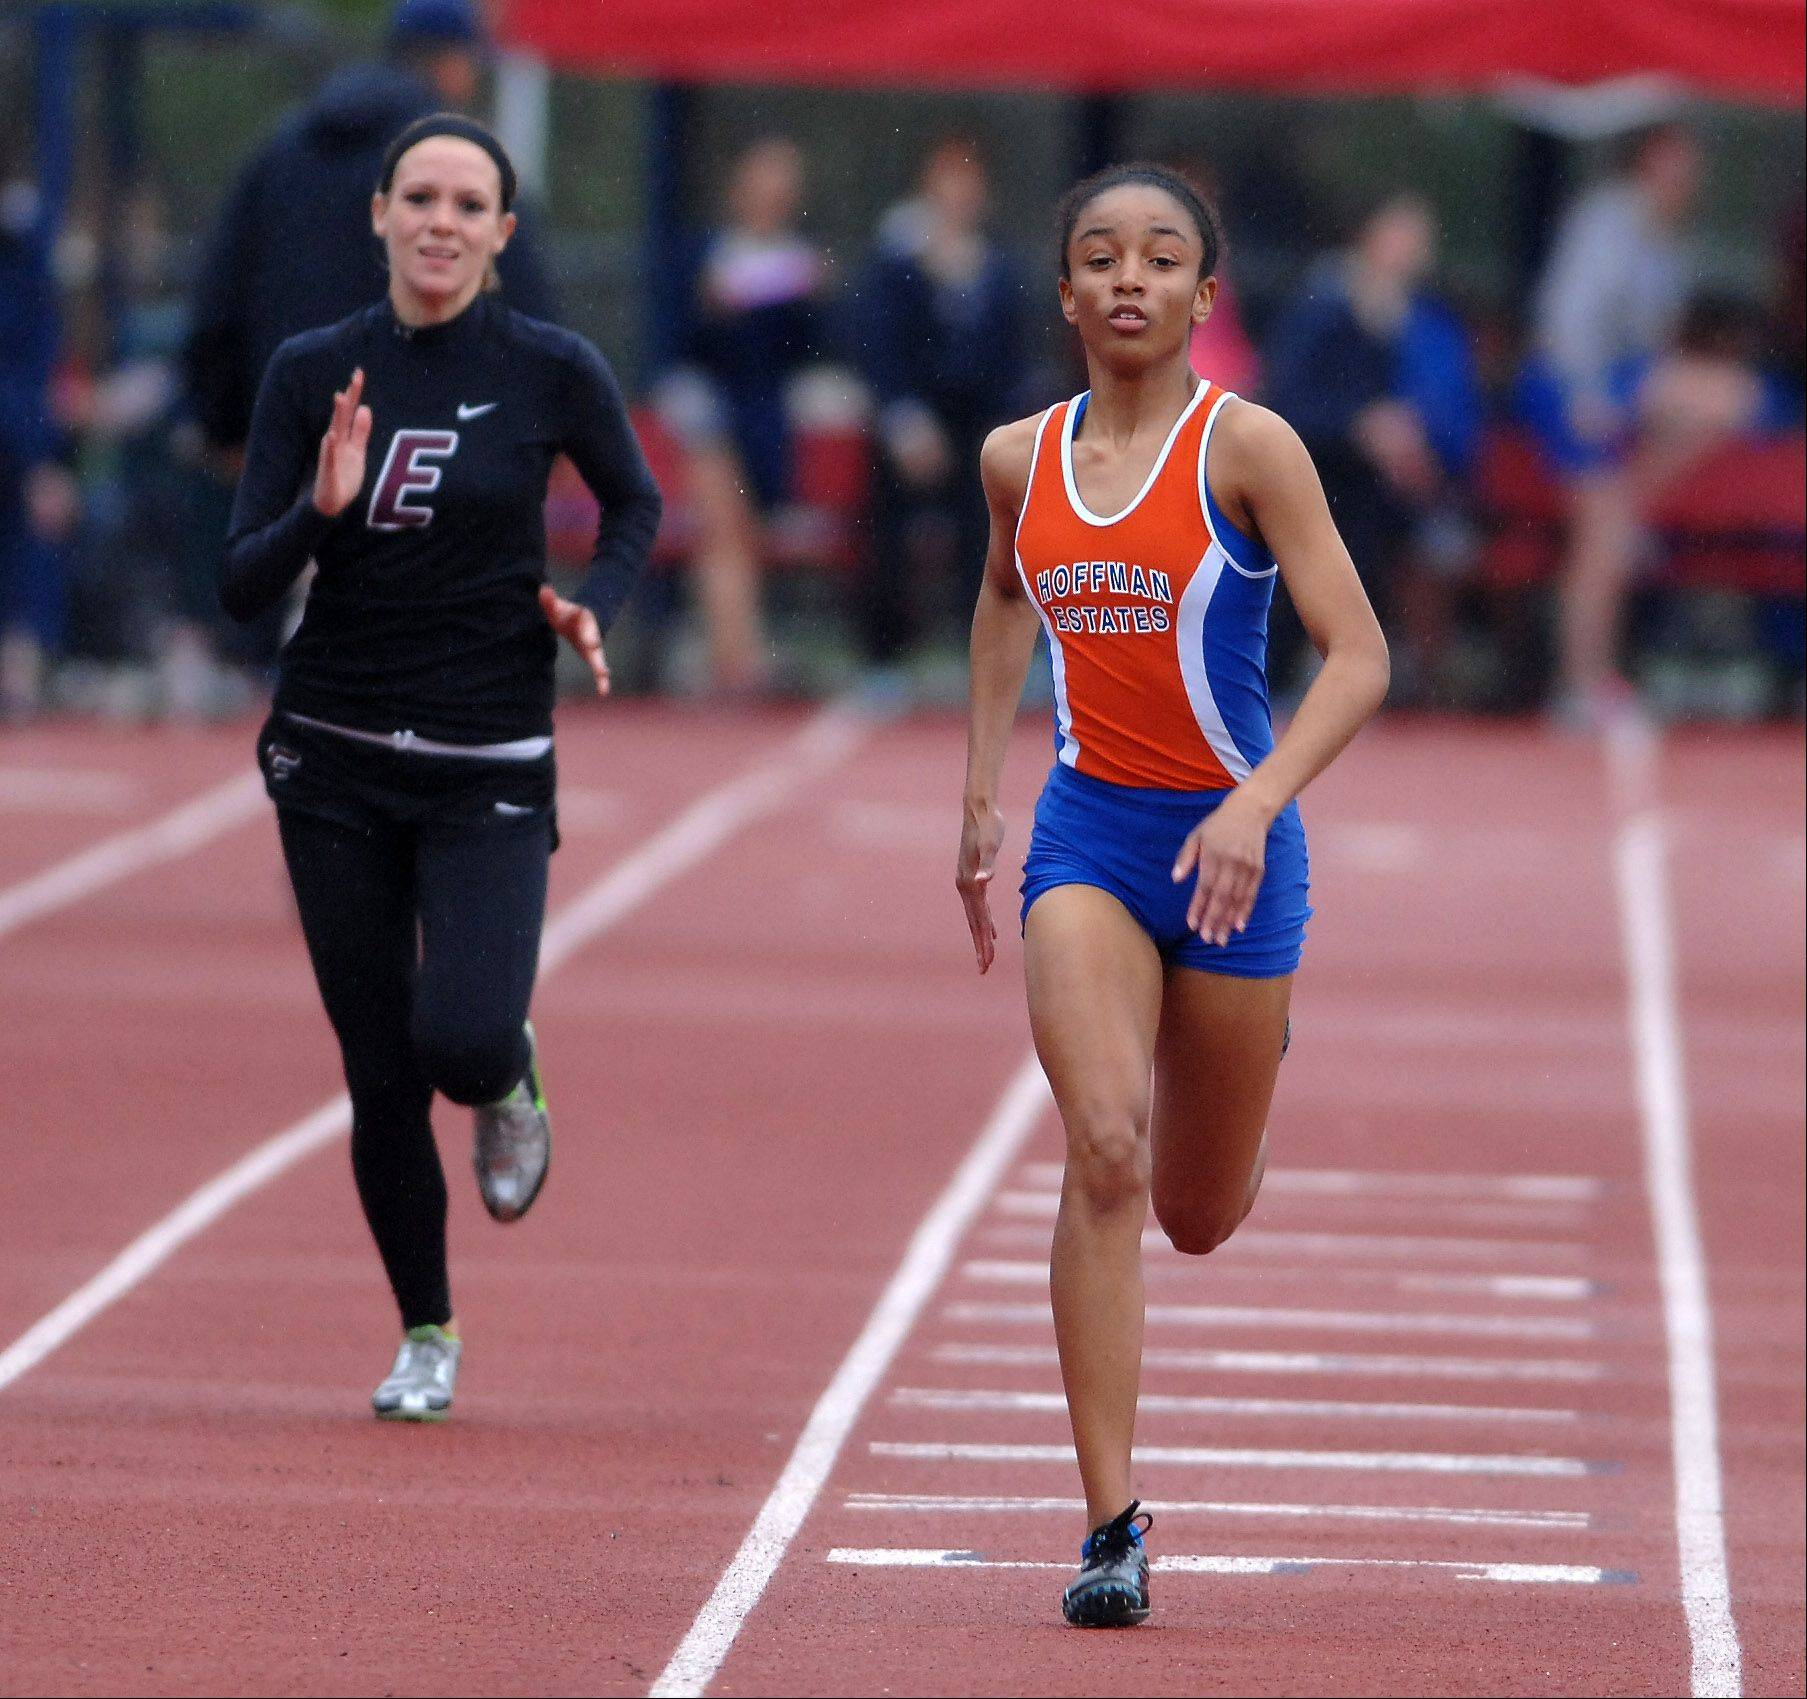 Kaylan Williams of Hoffman Estates wins her preliminary heat of the 200 meter dash during the West Aurora girl's track sectional Thursday.